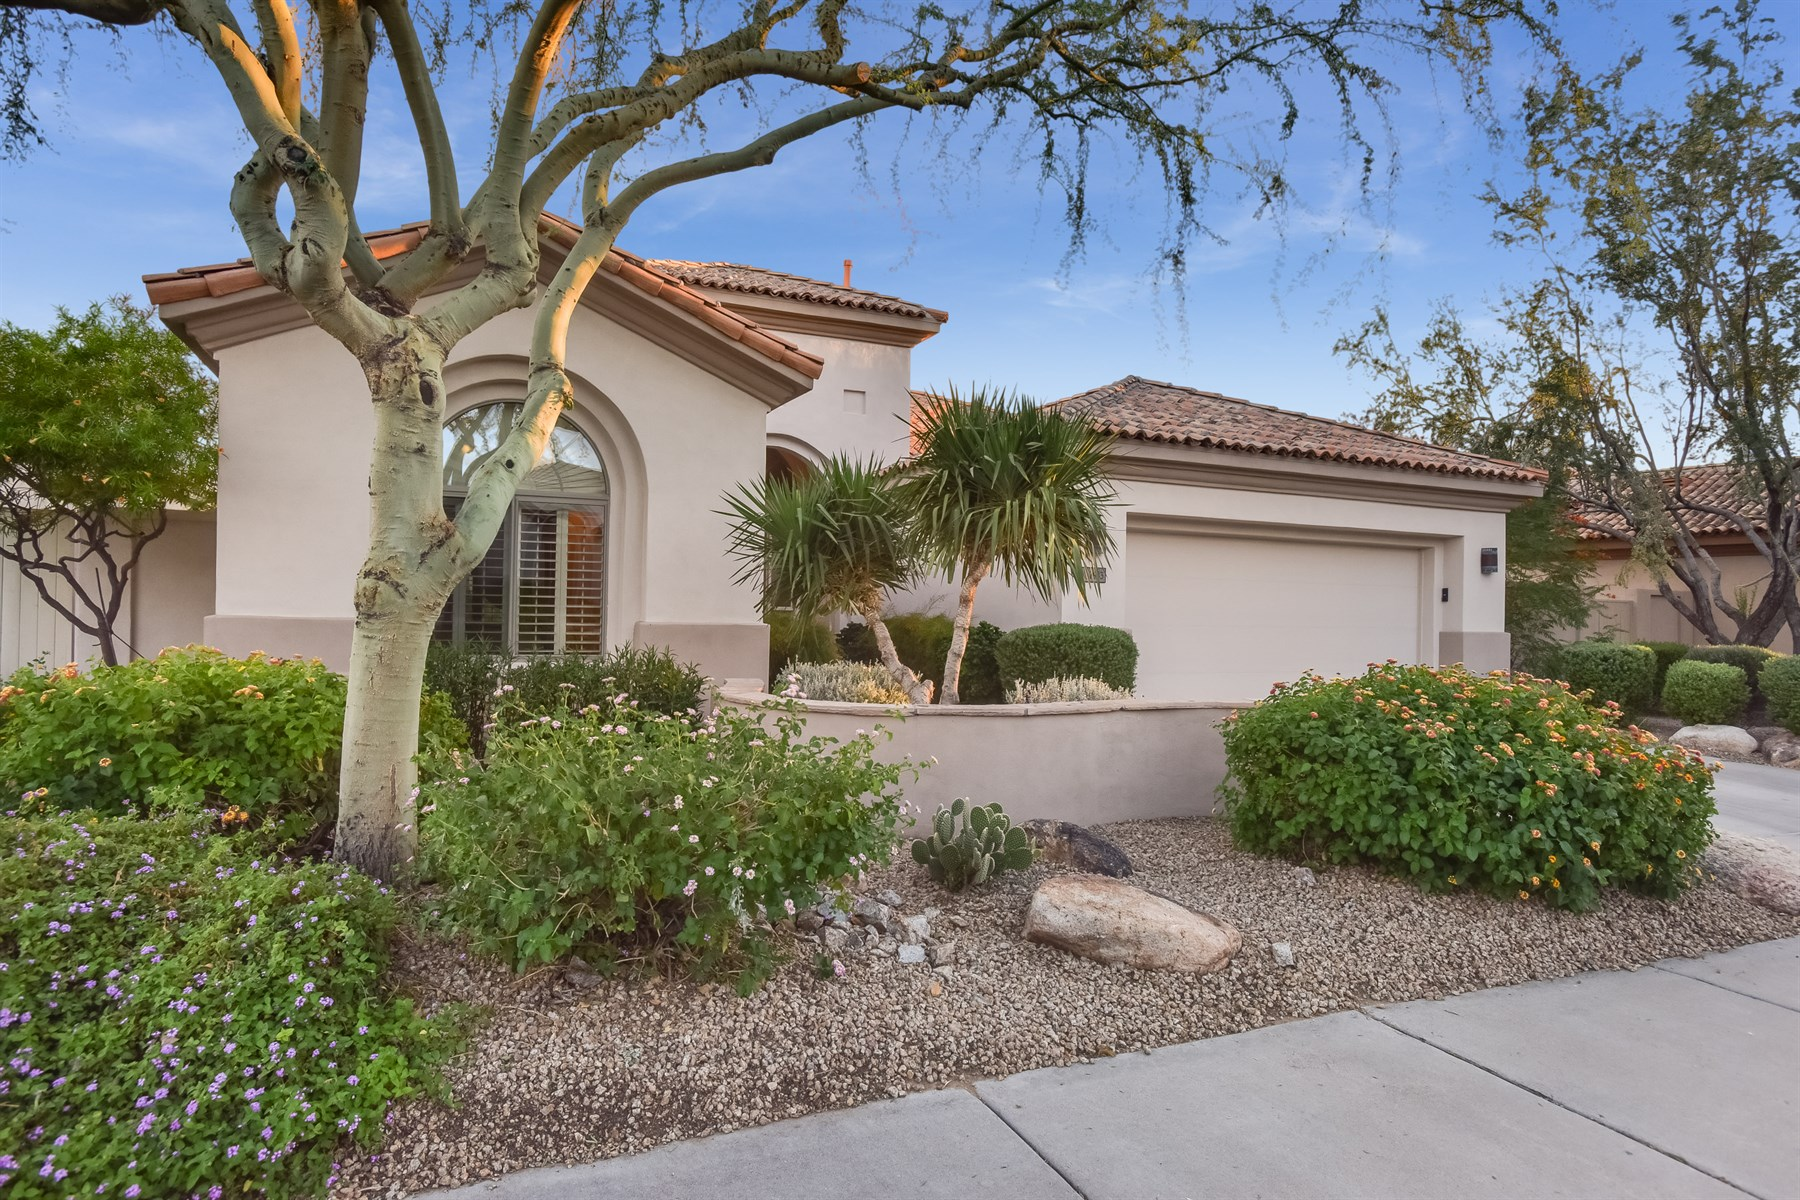 Vivienda unifamiliar por un Venta en Elegant and highly upgraded in Grayhawk Golf Club's 7683 E Fledgling Dr Scottsdale, Arizona 85255 Estados Unidos